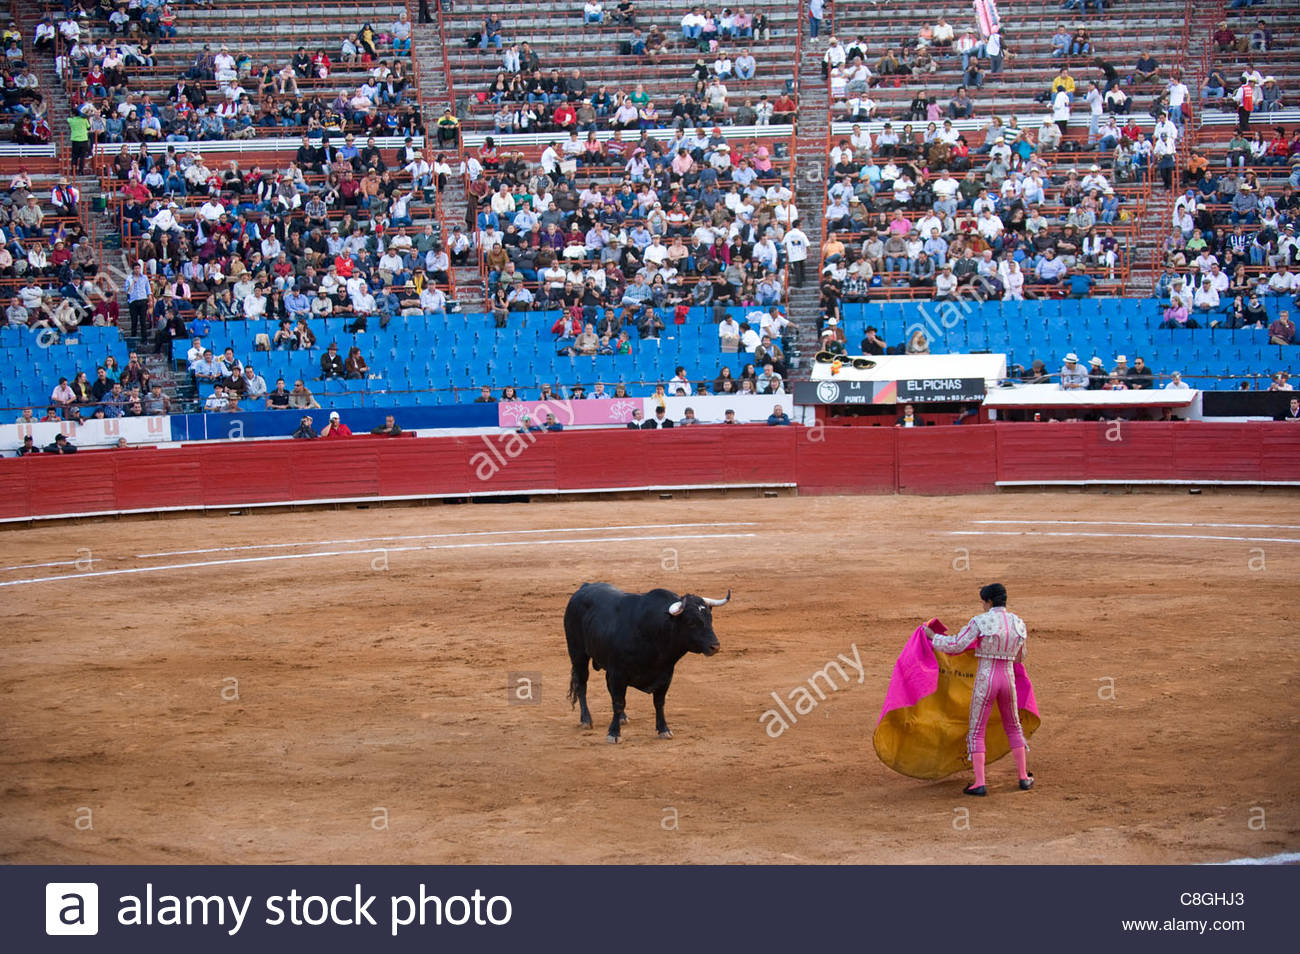 A bullfight in Mexico City, spectators watch the bull and Matador. - Stock Image